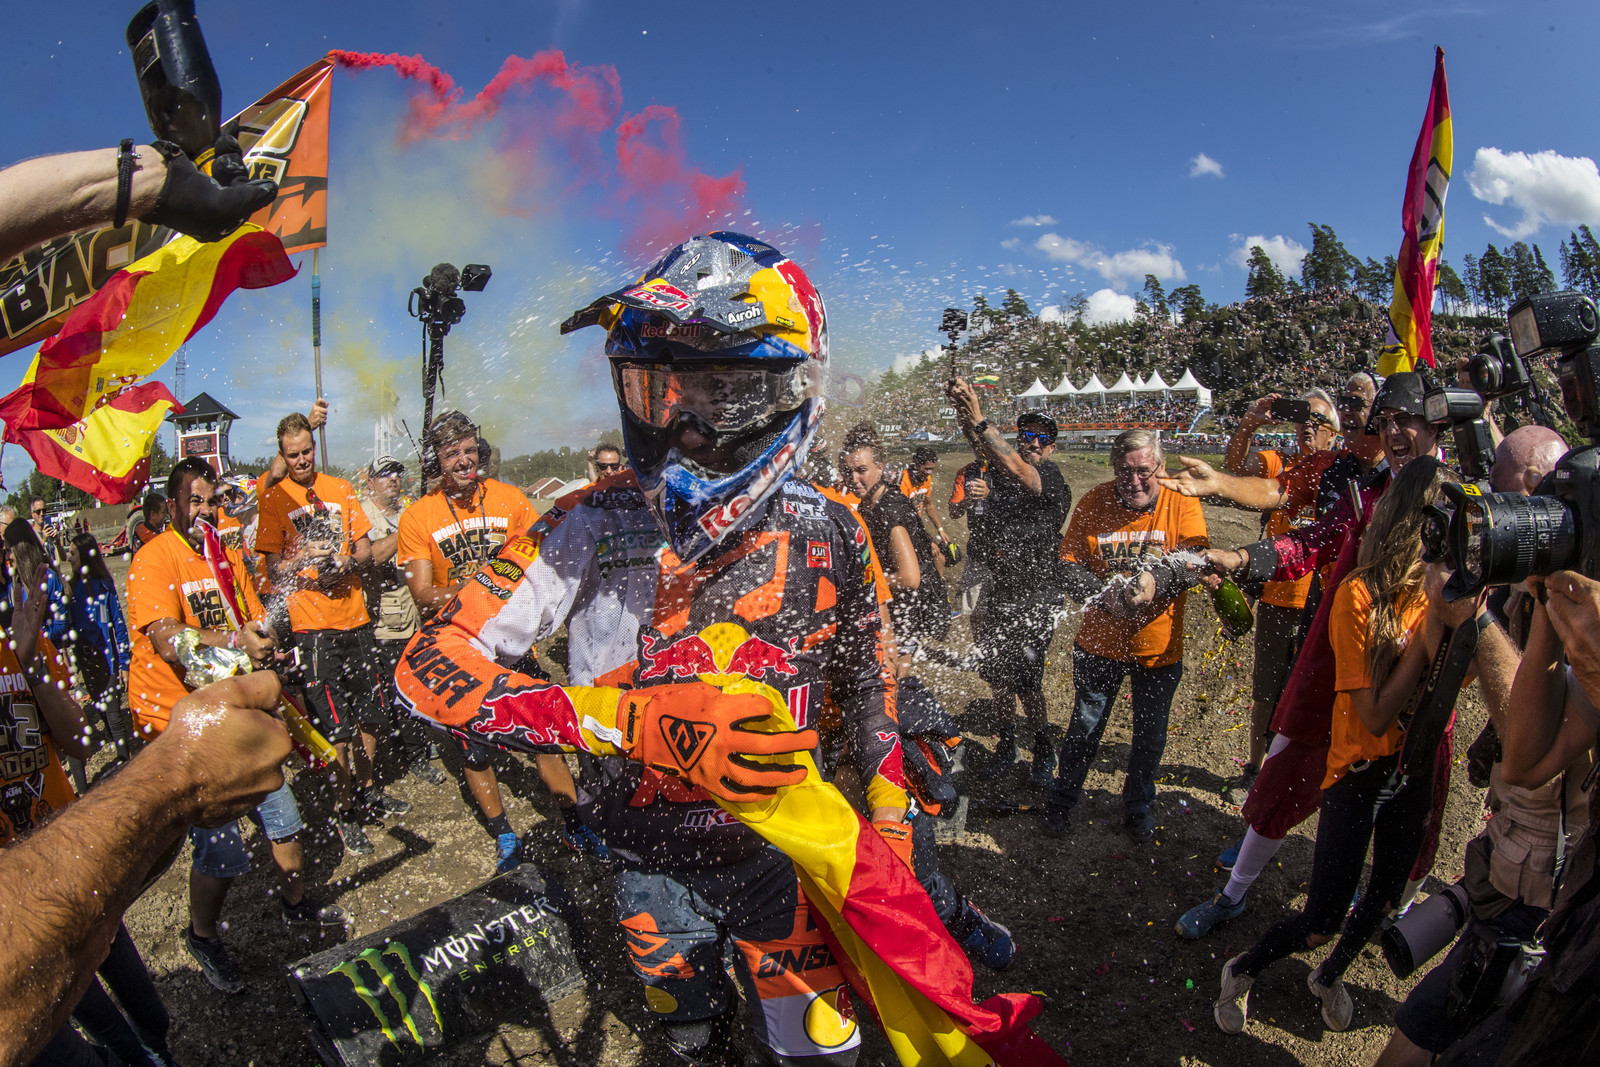 The big news of the weekend was Jorge Prado taking the MX2 Championship for the second year in a row.